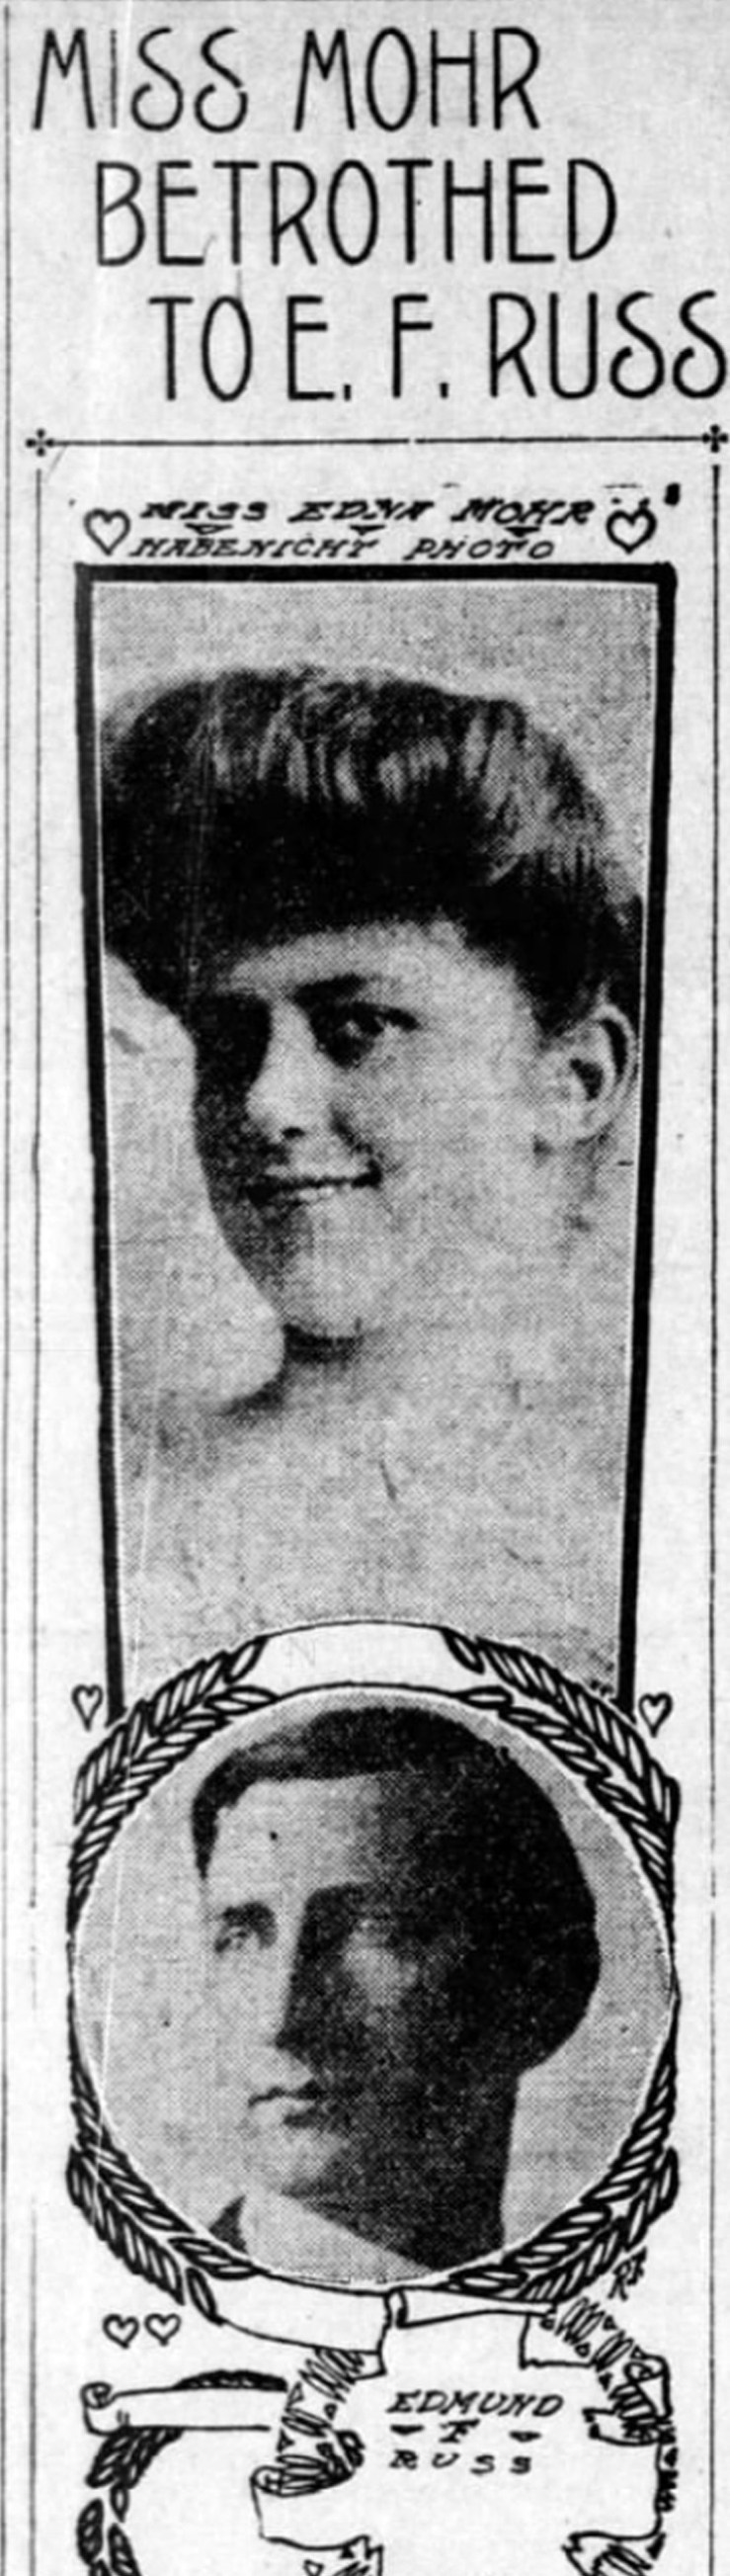 Edna Mohr upon her engagement to Edmund Russ. SF Call, 6 Nov 1905.